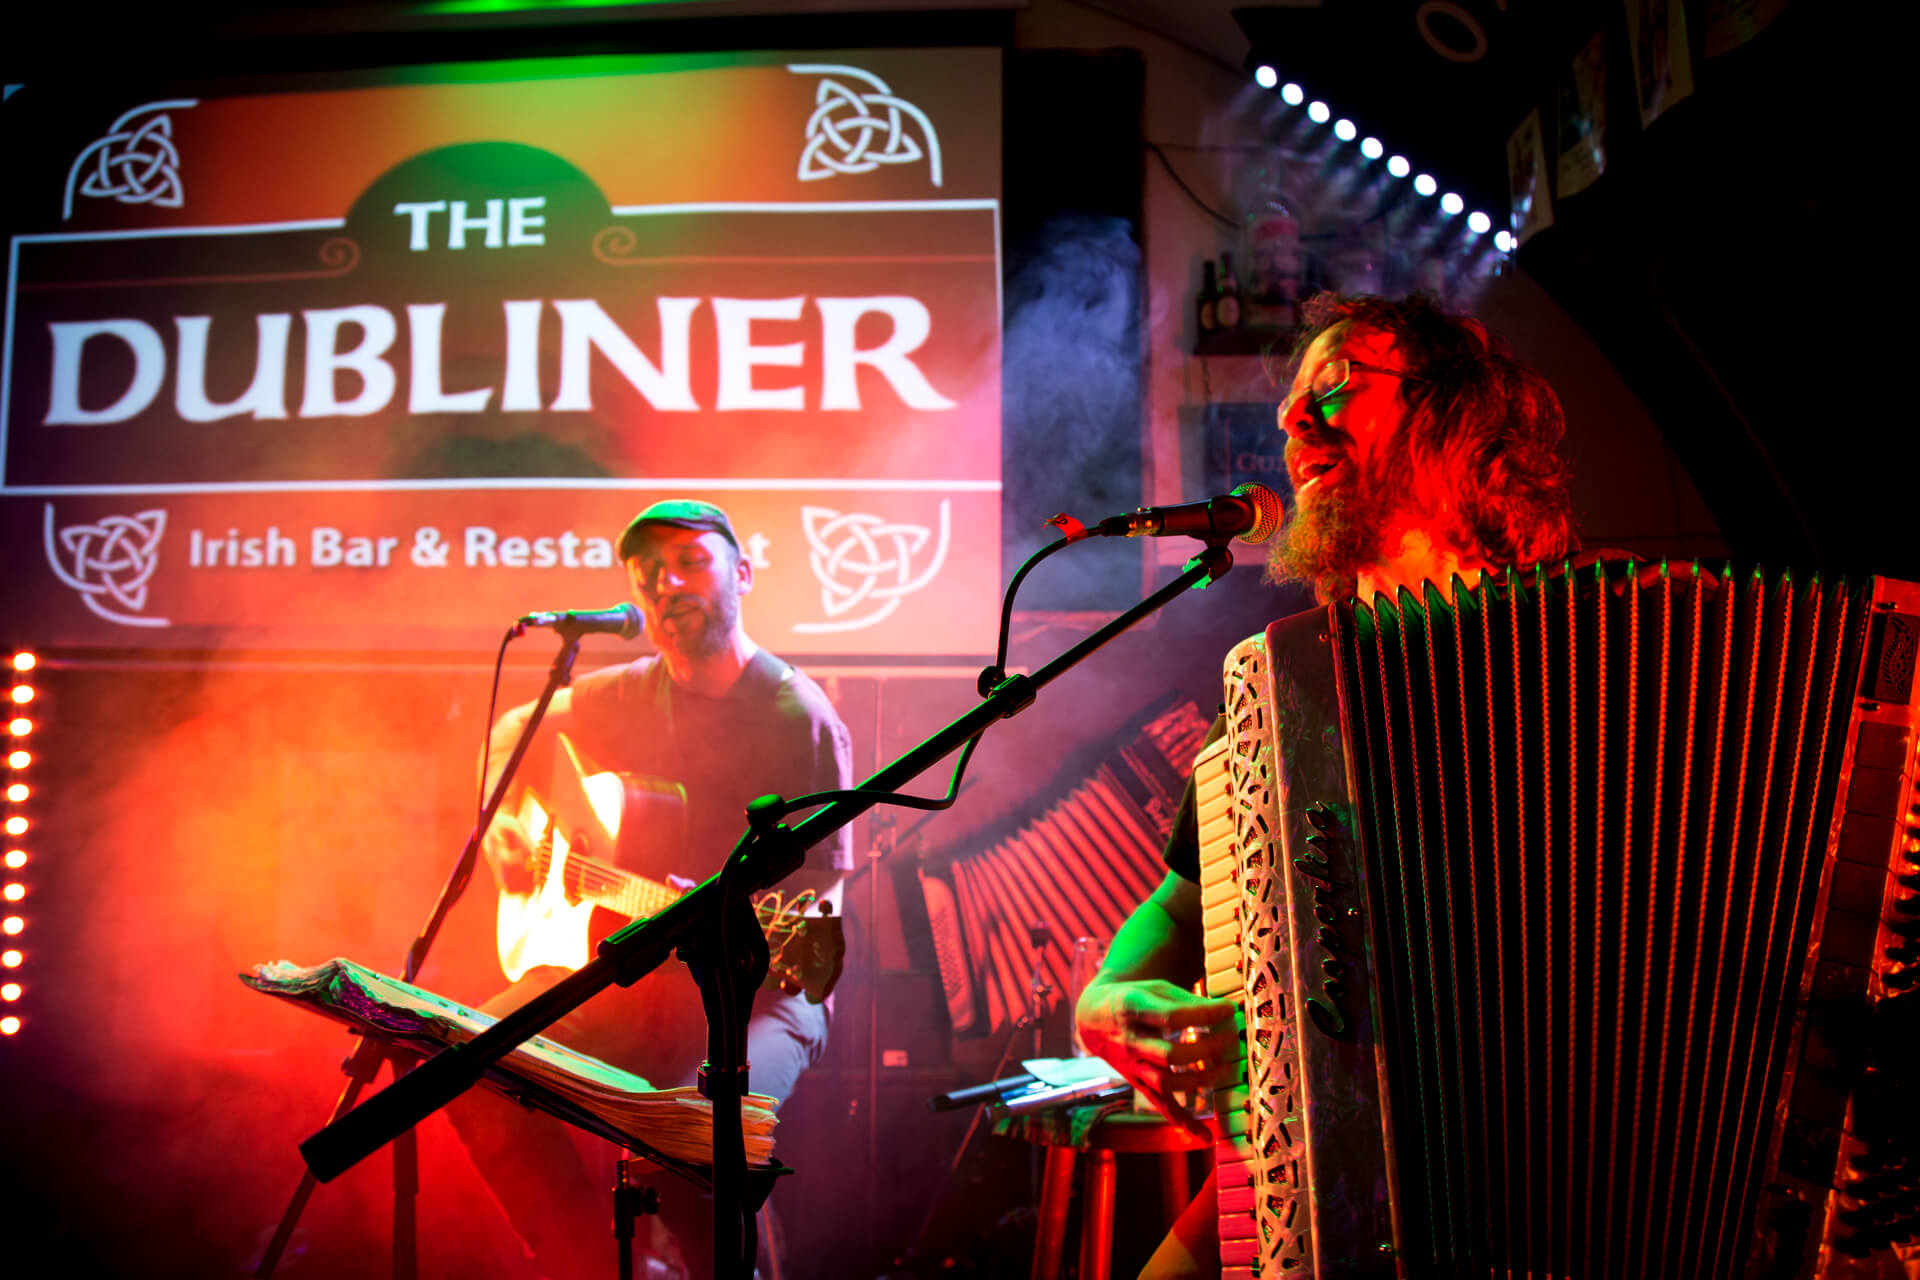 Finnegans | The Dubliner Prague Irish Bar